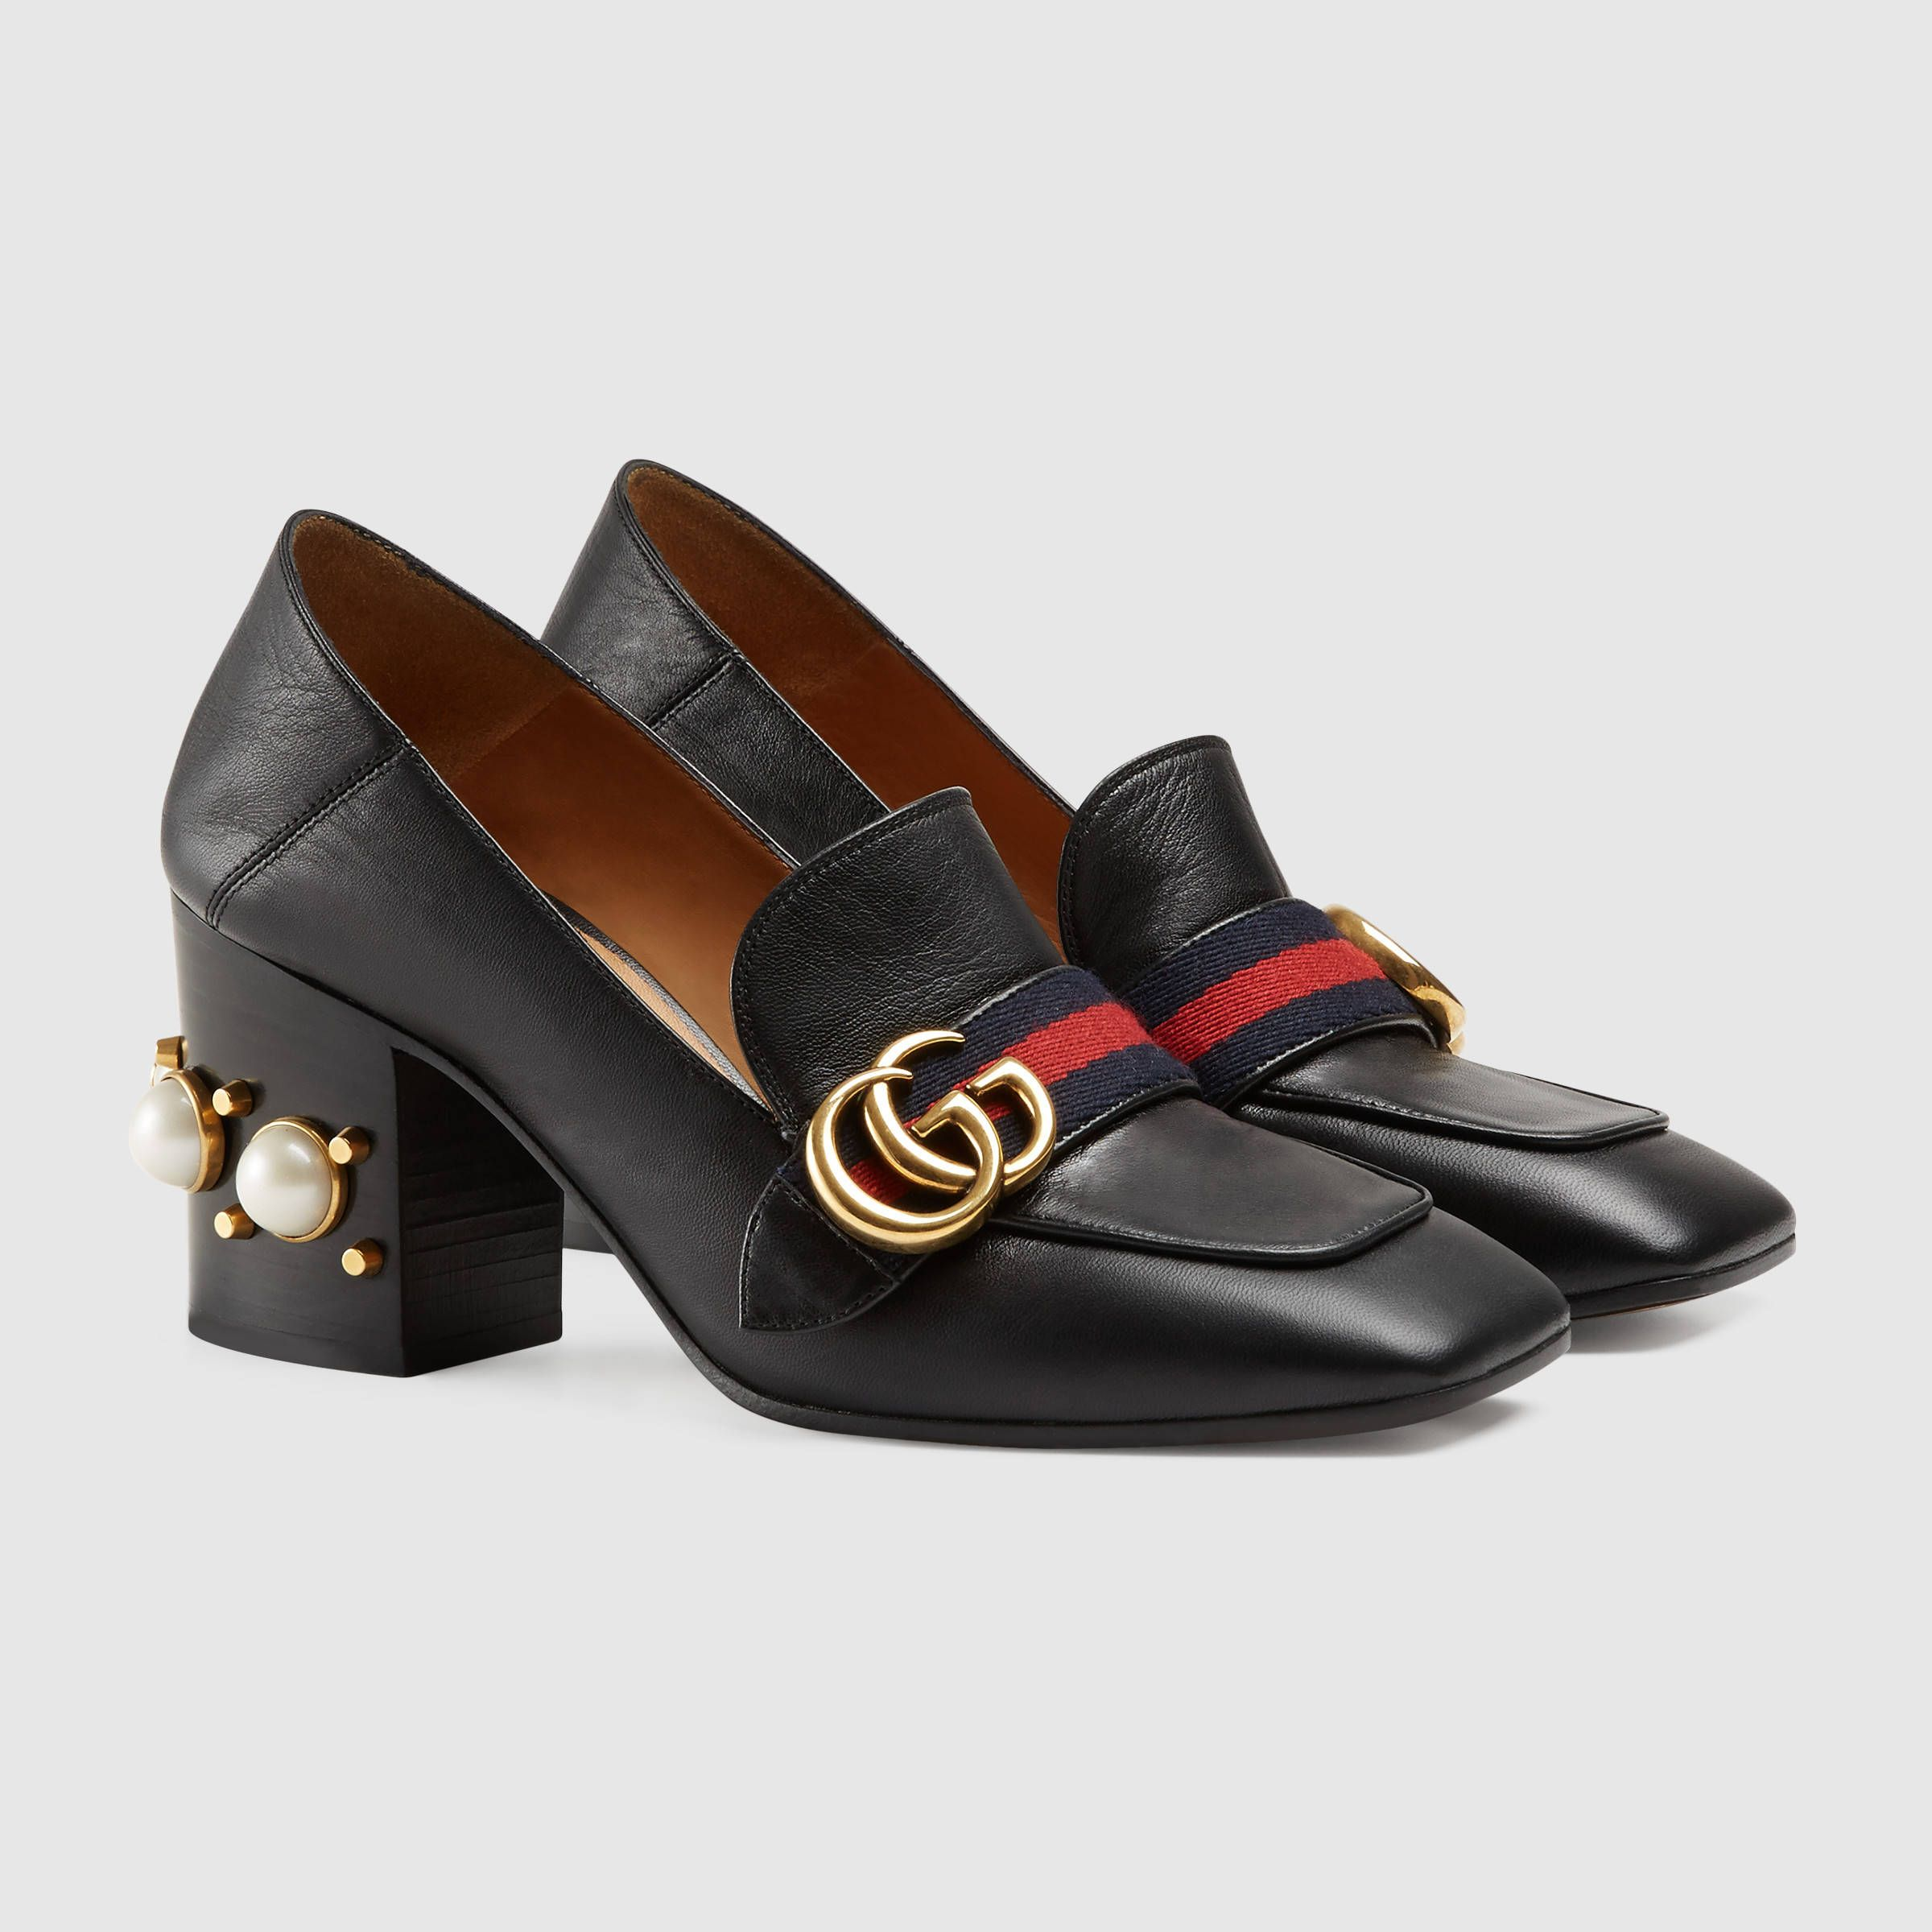 471ff4f8e49 Gucci Women - Leather Black Mid-Heel Loafers - (Also available in Red    Green)  1